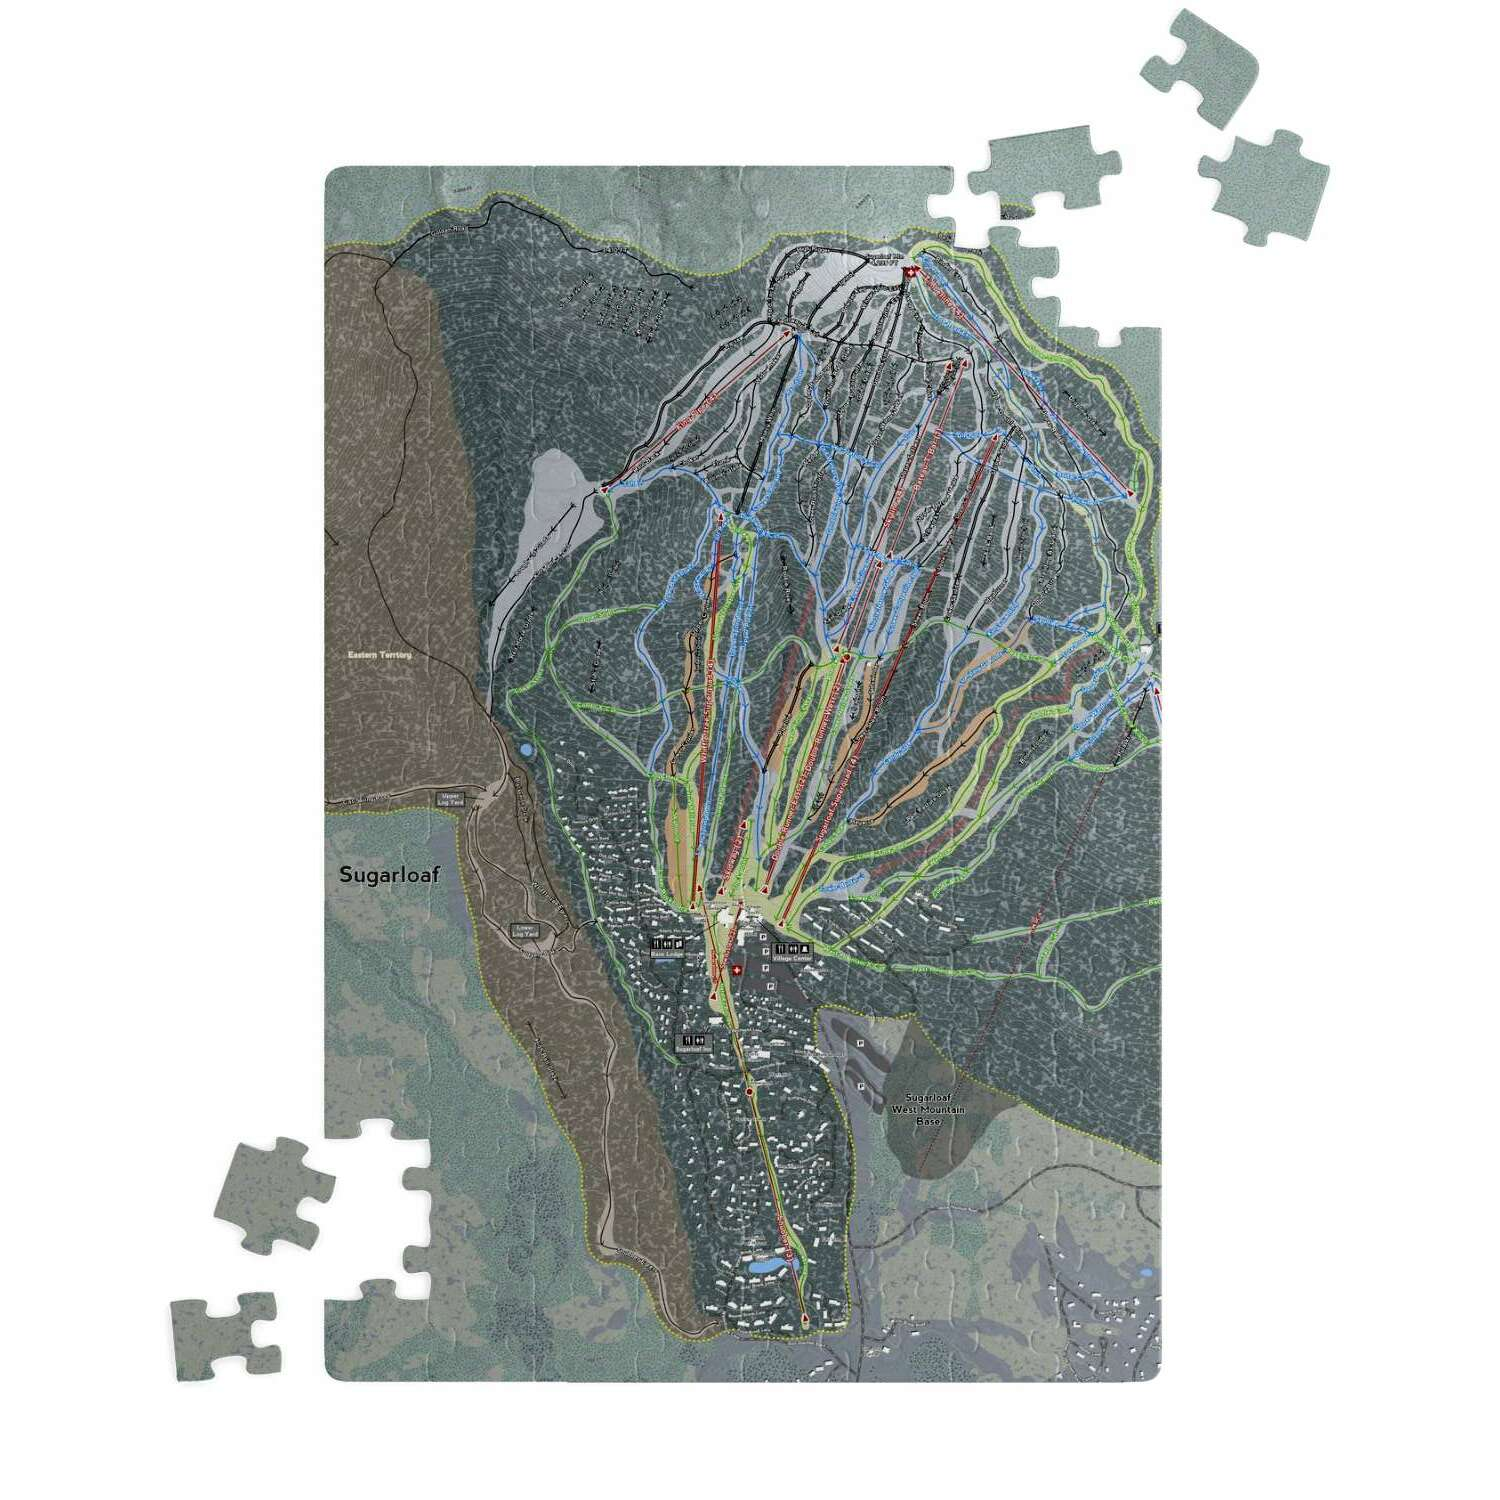 Sugarloaf, Maine Ski Resort Map Puzzle